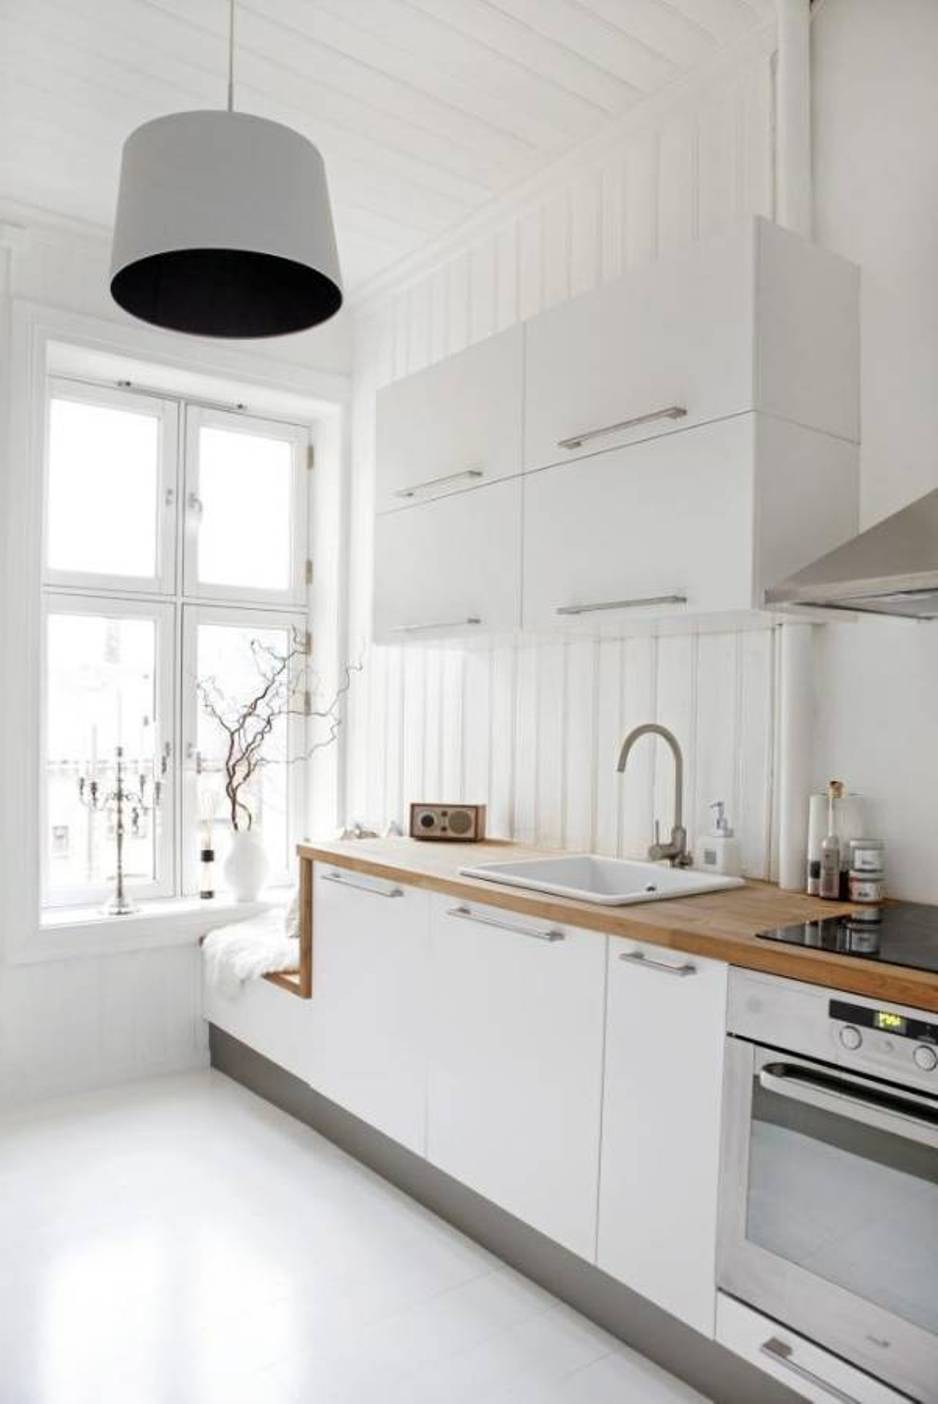 10 amazing scandinavian kitchen interior design ideas for Kitchen style design